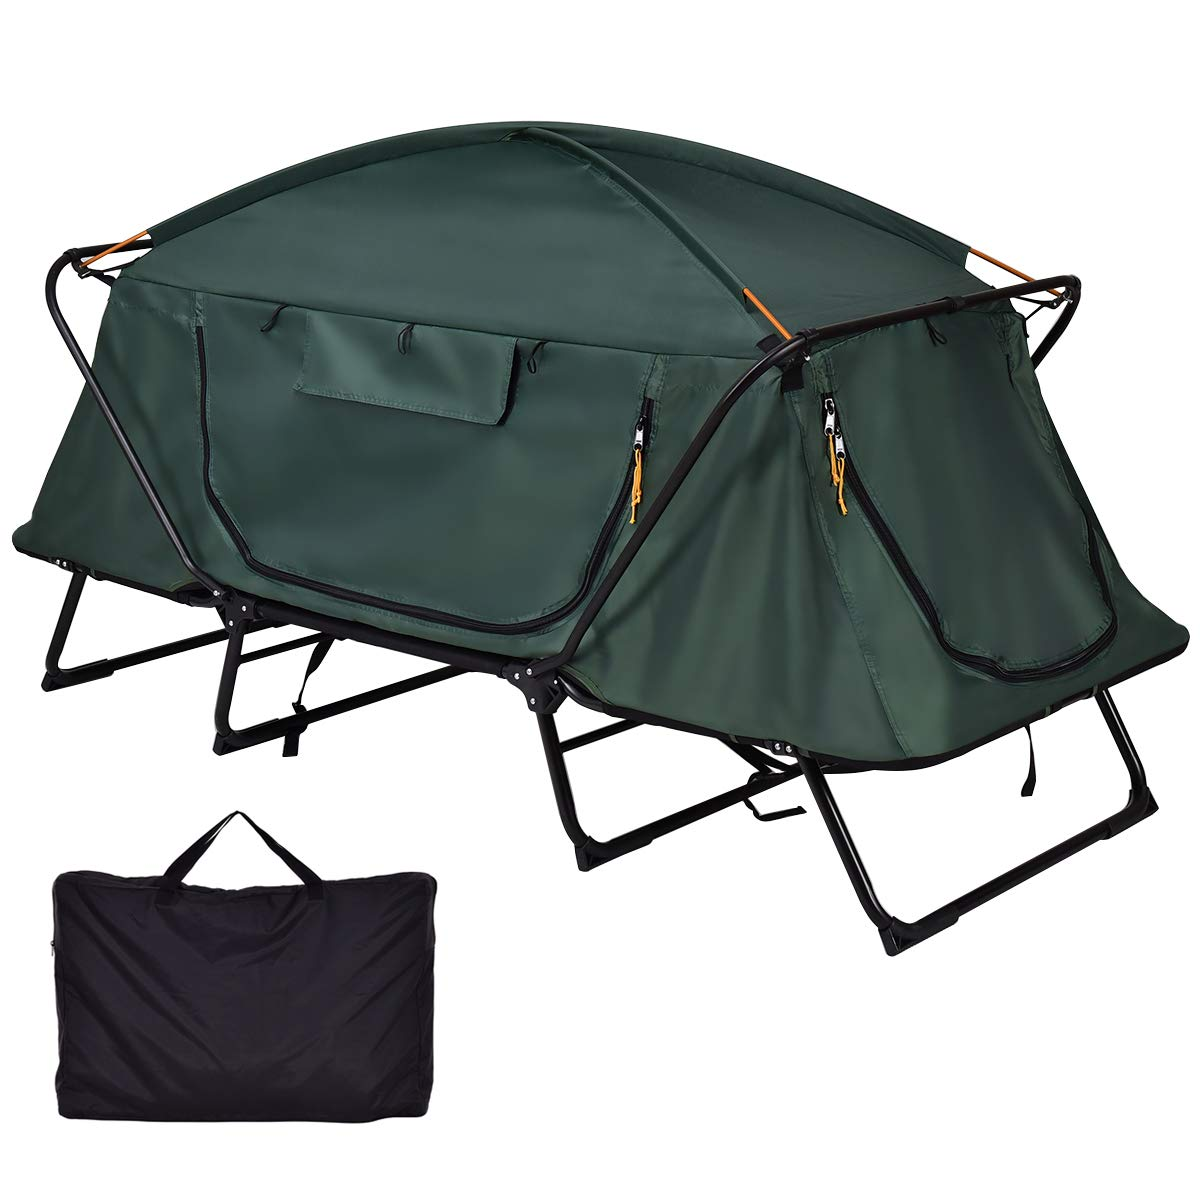 GYMAX Tent Cot, 1 Person Foldable Camping Waterproof Shelter with Window Carry Bag by GYMAX (Image #2)